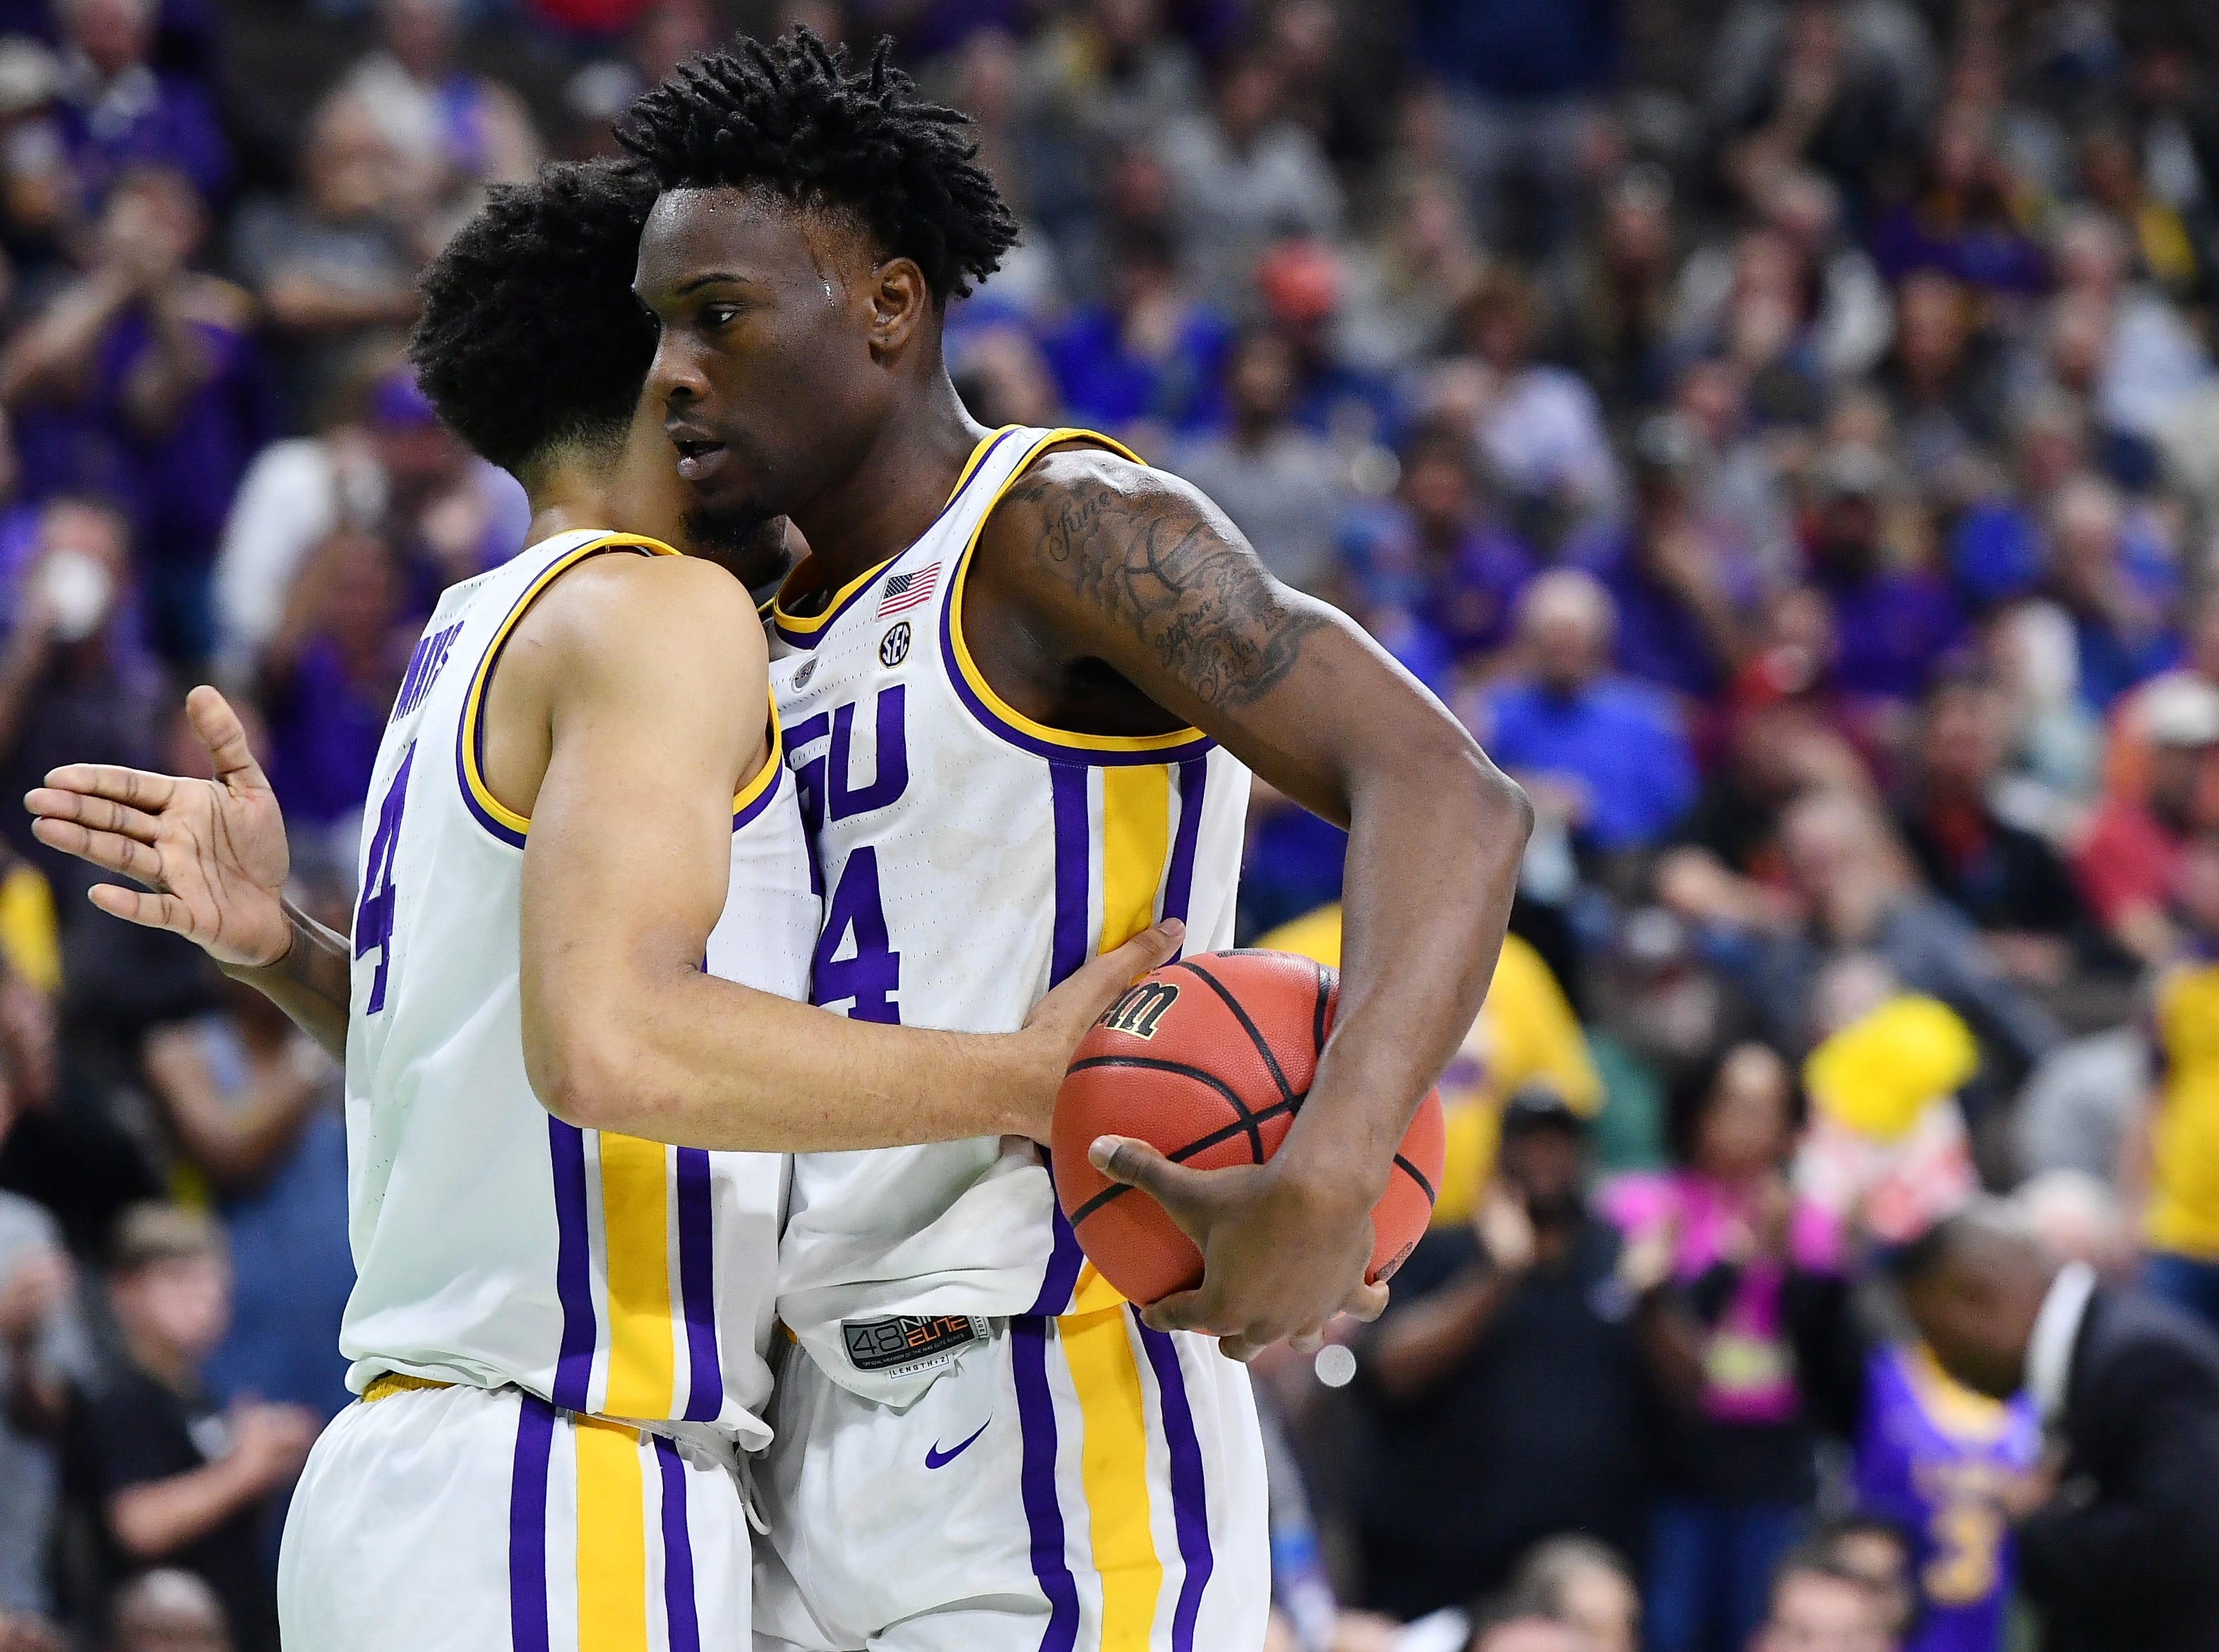 Mar 21, 2019; Jacksonville, FL, USA; LSU Tigers guard Skylar Mays (4) and forward Emmitt Williams (24) react during the second half against the Yale Bulldogs in the first round of the 2019 NCAA Tournament at Jacksonville Veterans Memorial Arena. Mandatory Credit: John David Mercer-USA TODAY Sports